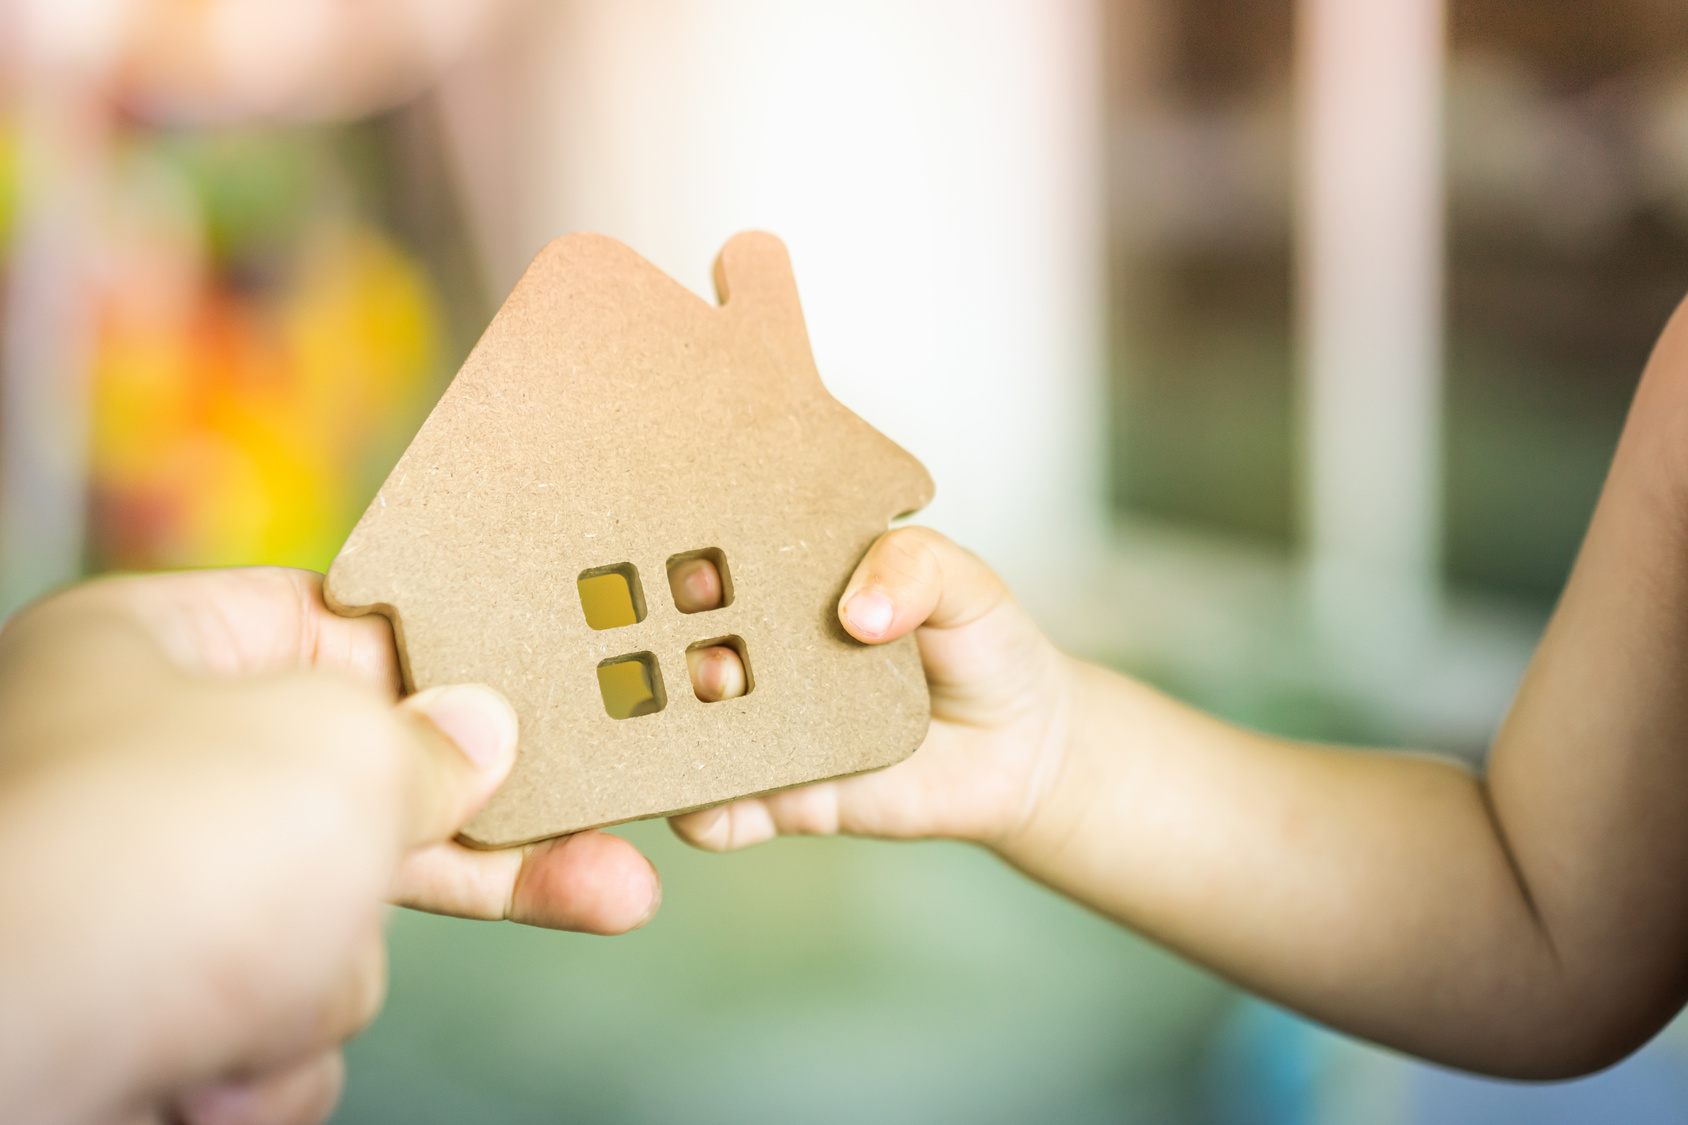 Baby Hands holding a house model with mother hand. The concept of relocation, mortgage, inheritance, family assurance protection and legacy planning.